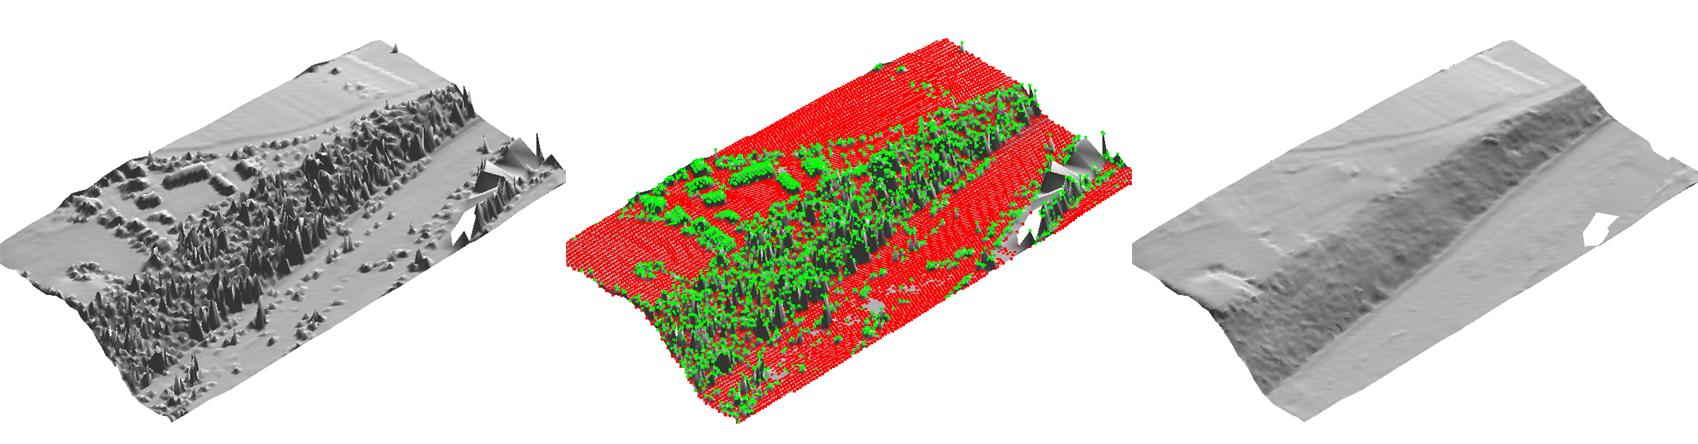 learn how to use lidar